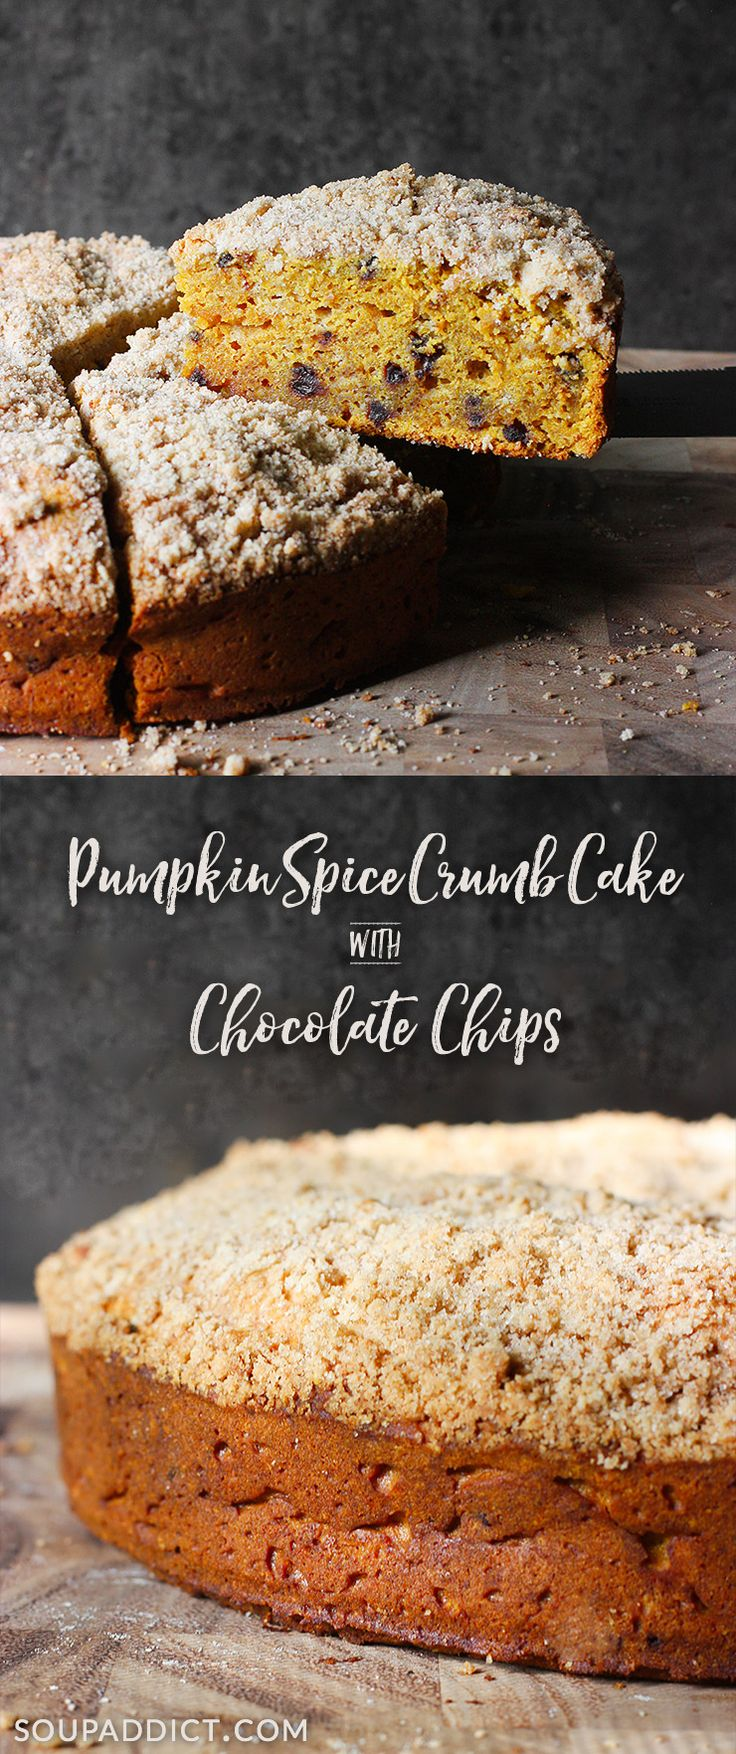 Pumpkin Spice Crumb Cake with Chocolate Chips